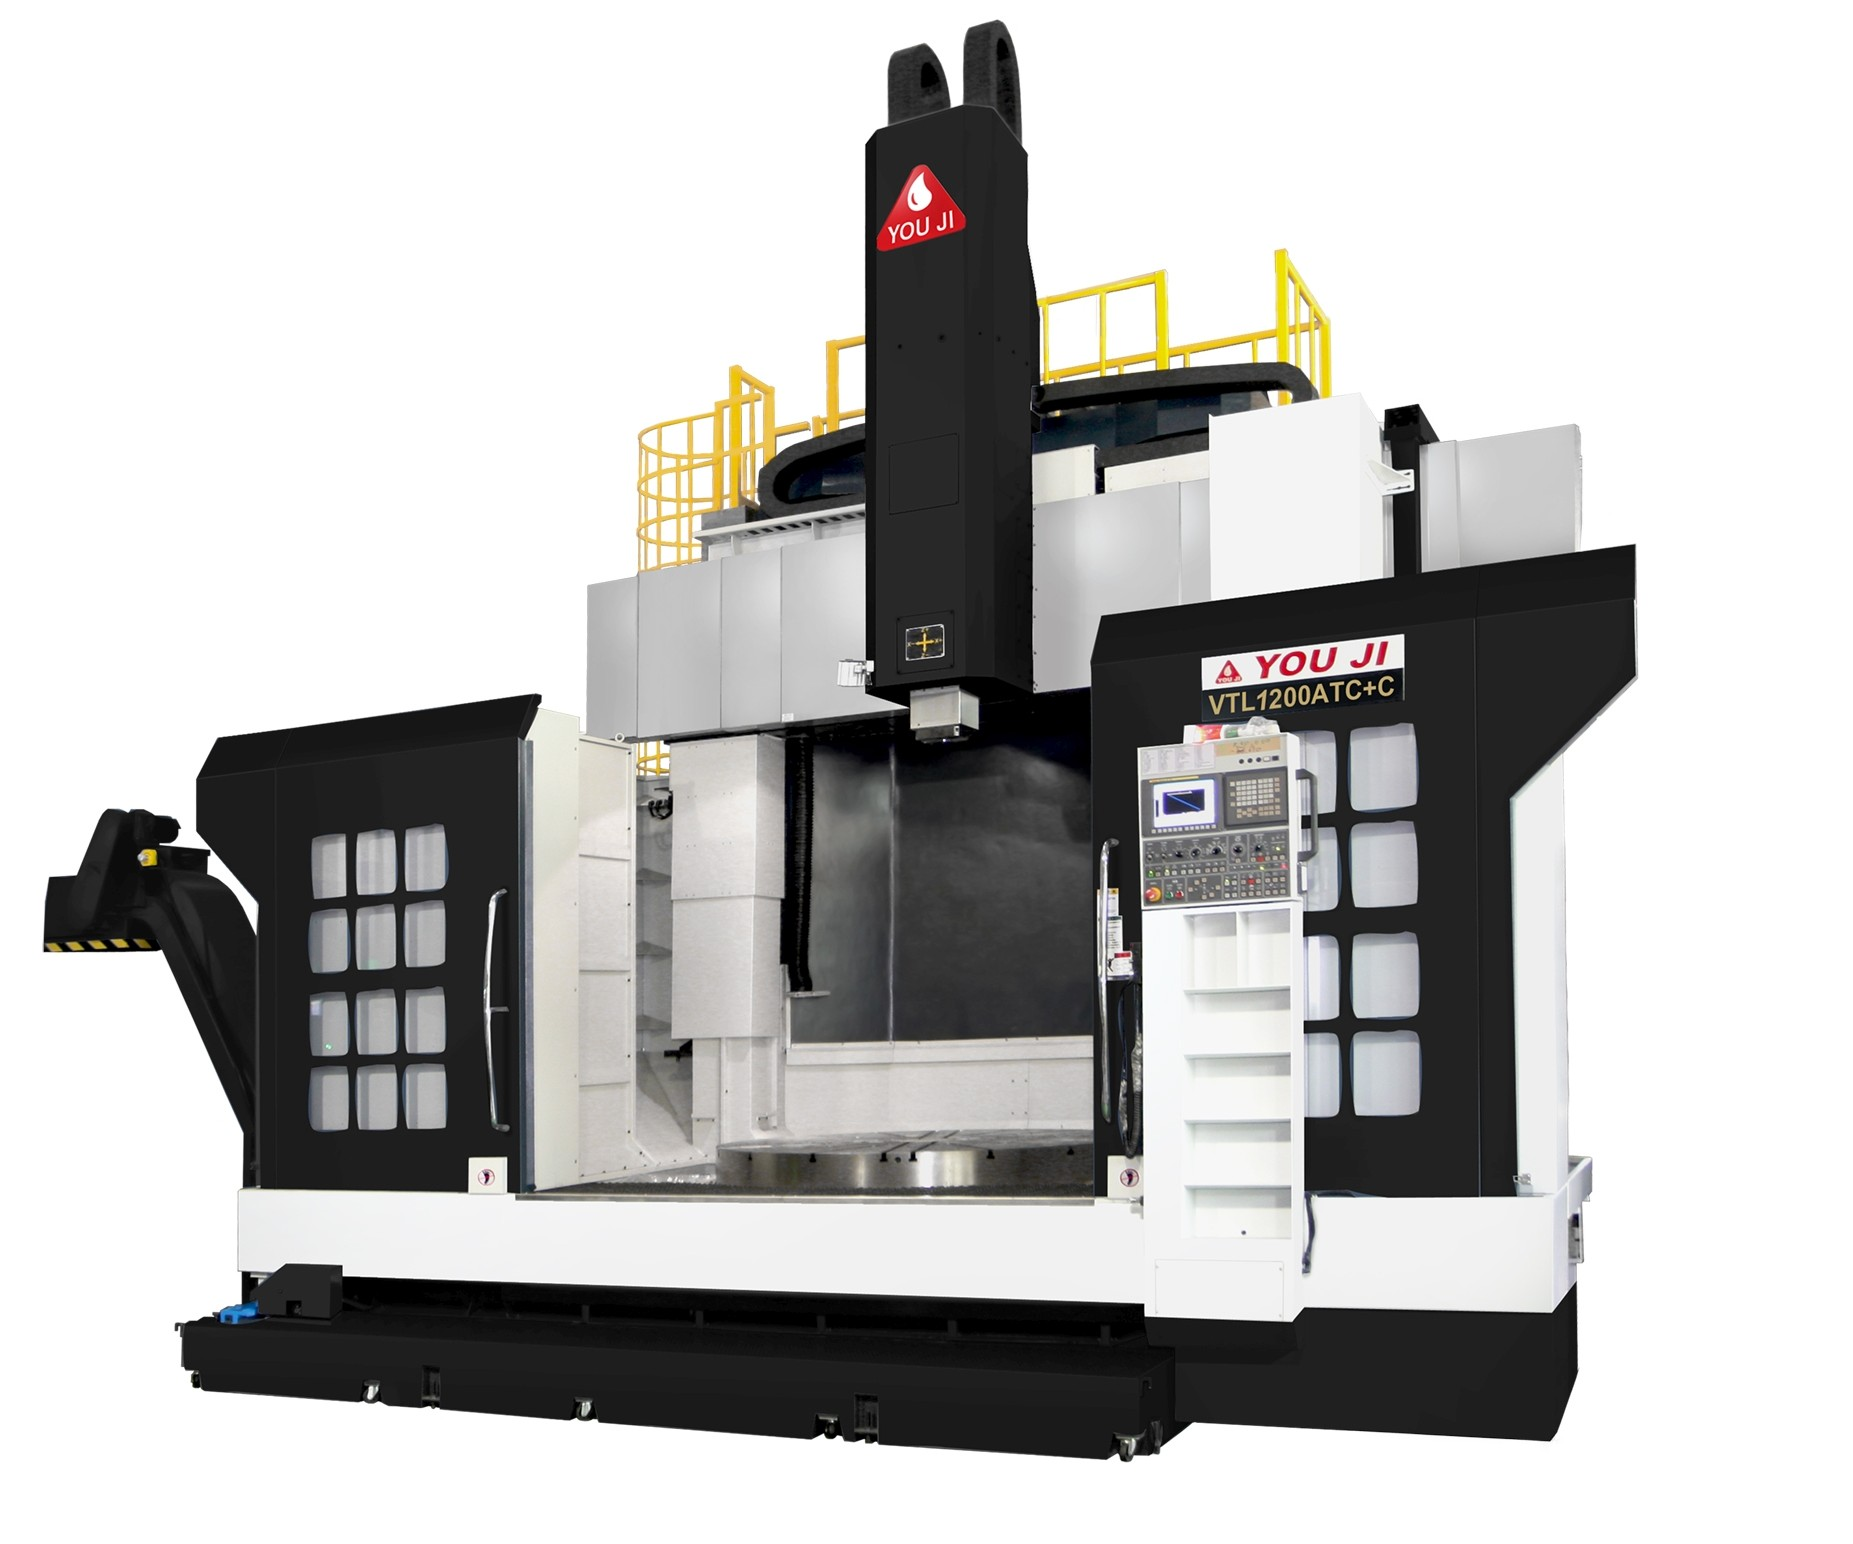 You Ji VTL-1200ATC+C from Absolute Machine Tools